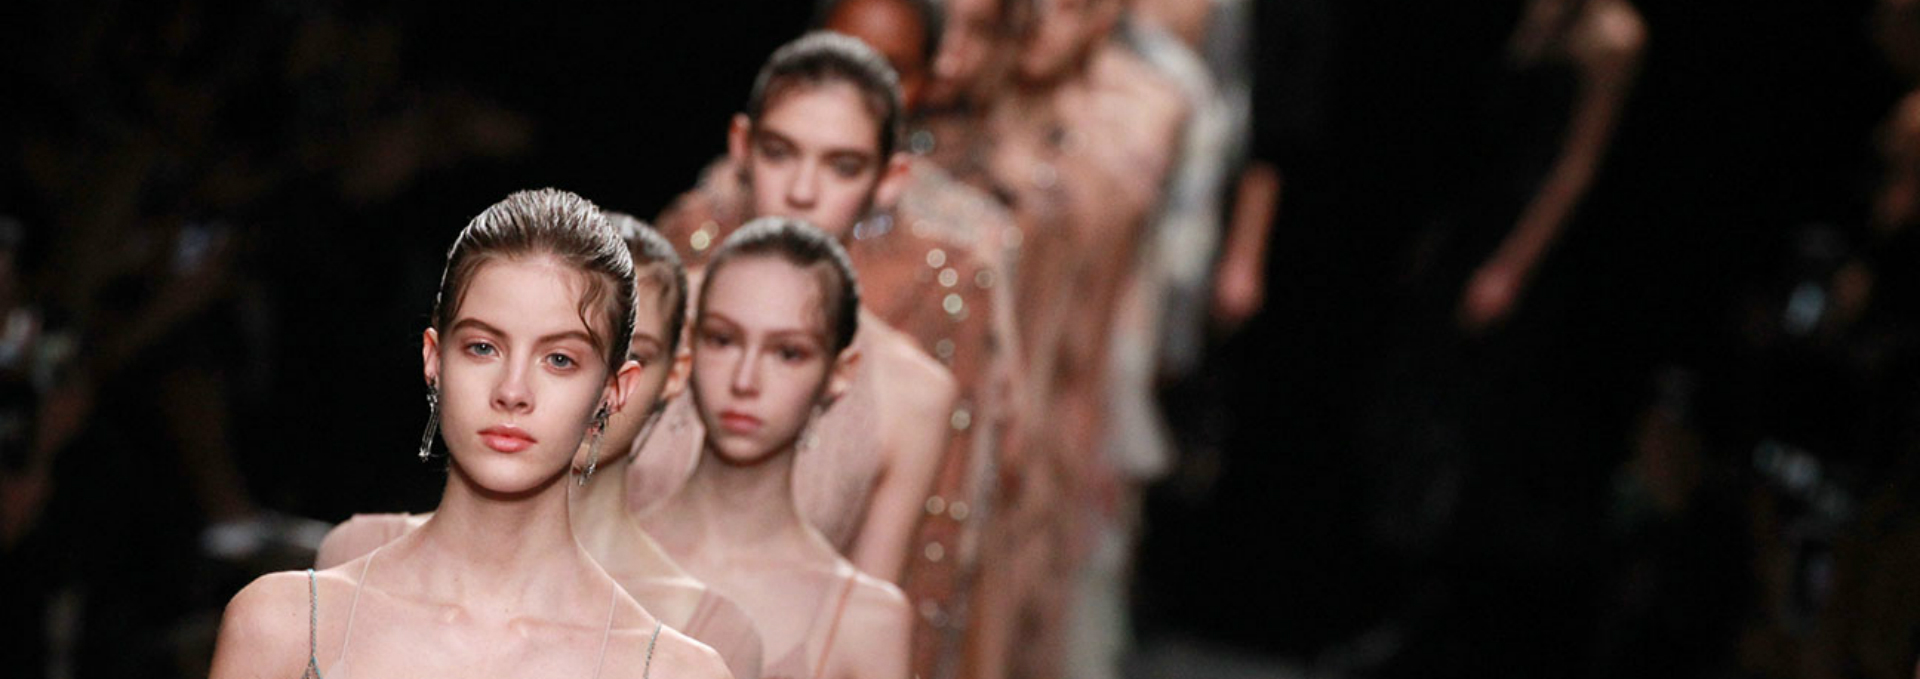 Fashion Trends - What To Look Out For This Paris Fashion Week Spring Season ➤ Discover the season's newest design news and inspiration ideas. Visit Daily Design News and subscribe our newsletter! #dailydesignnews #designnews #bestdesignevets #fashionnews #ParisFashionWeek2017 #ParisFashionWeek ParisFashionShow #PFW #PFW2017